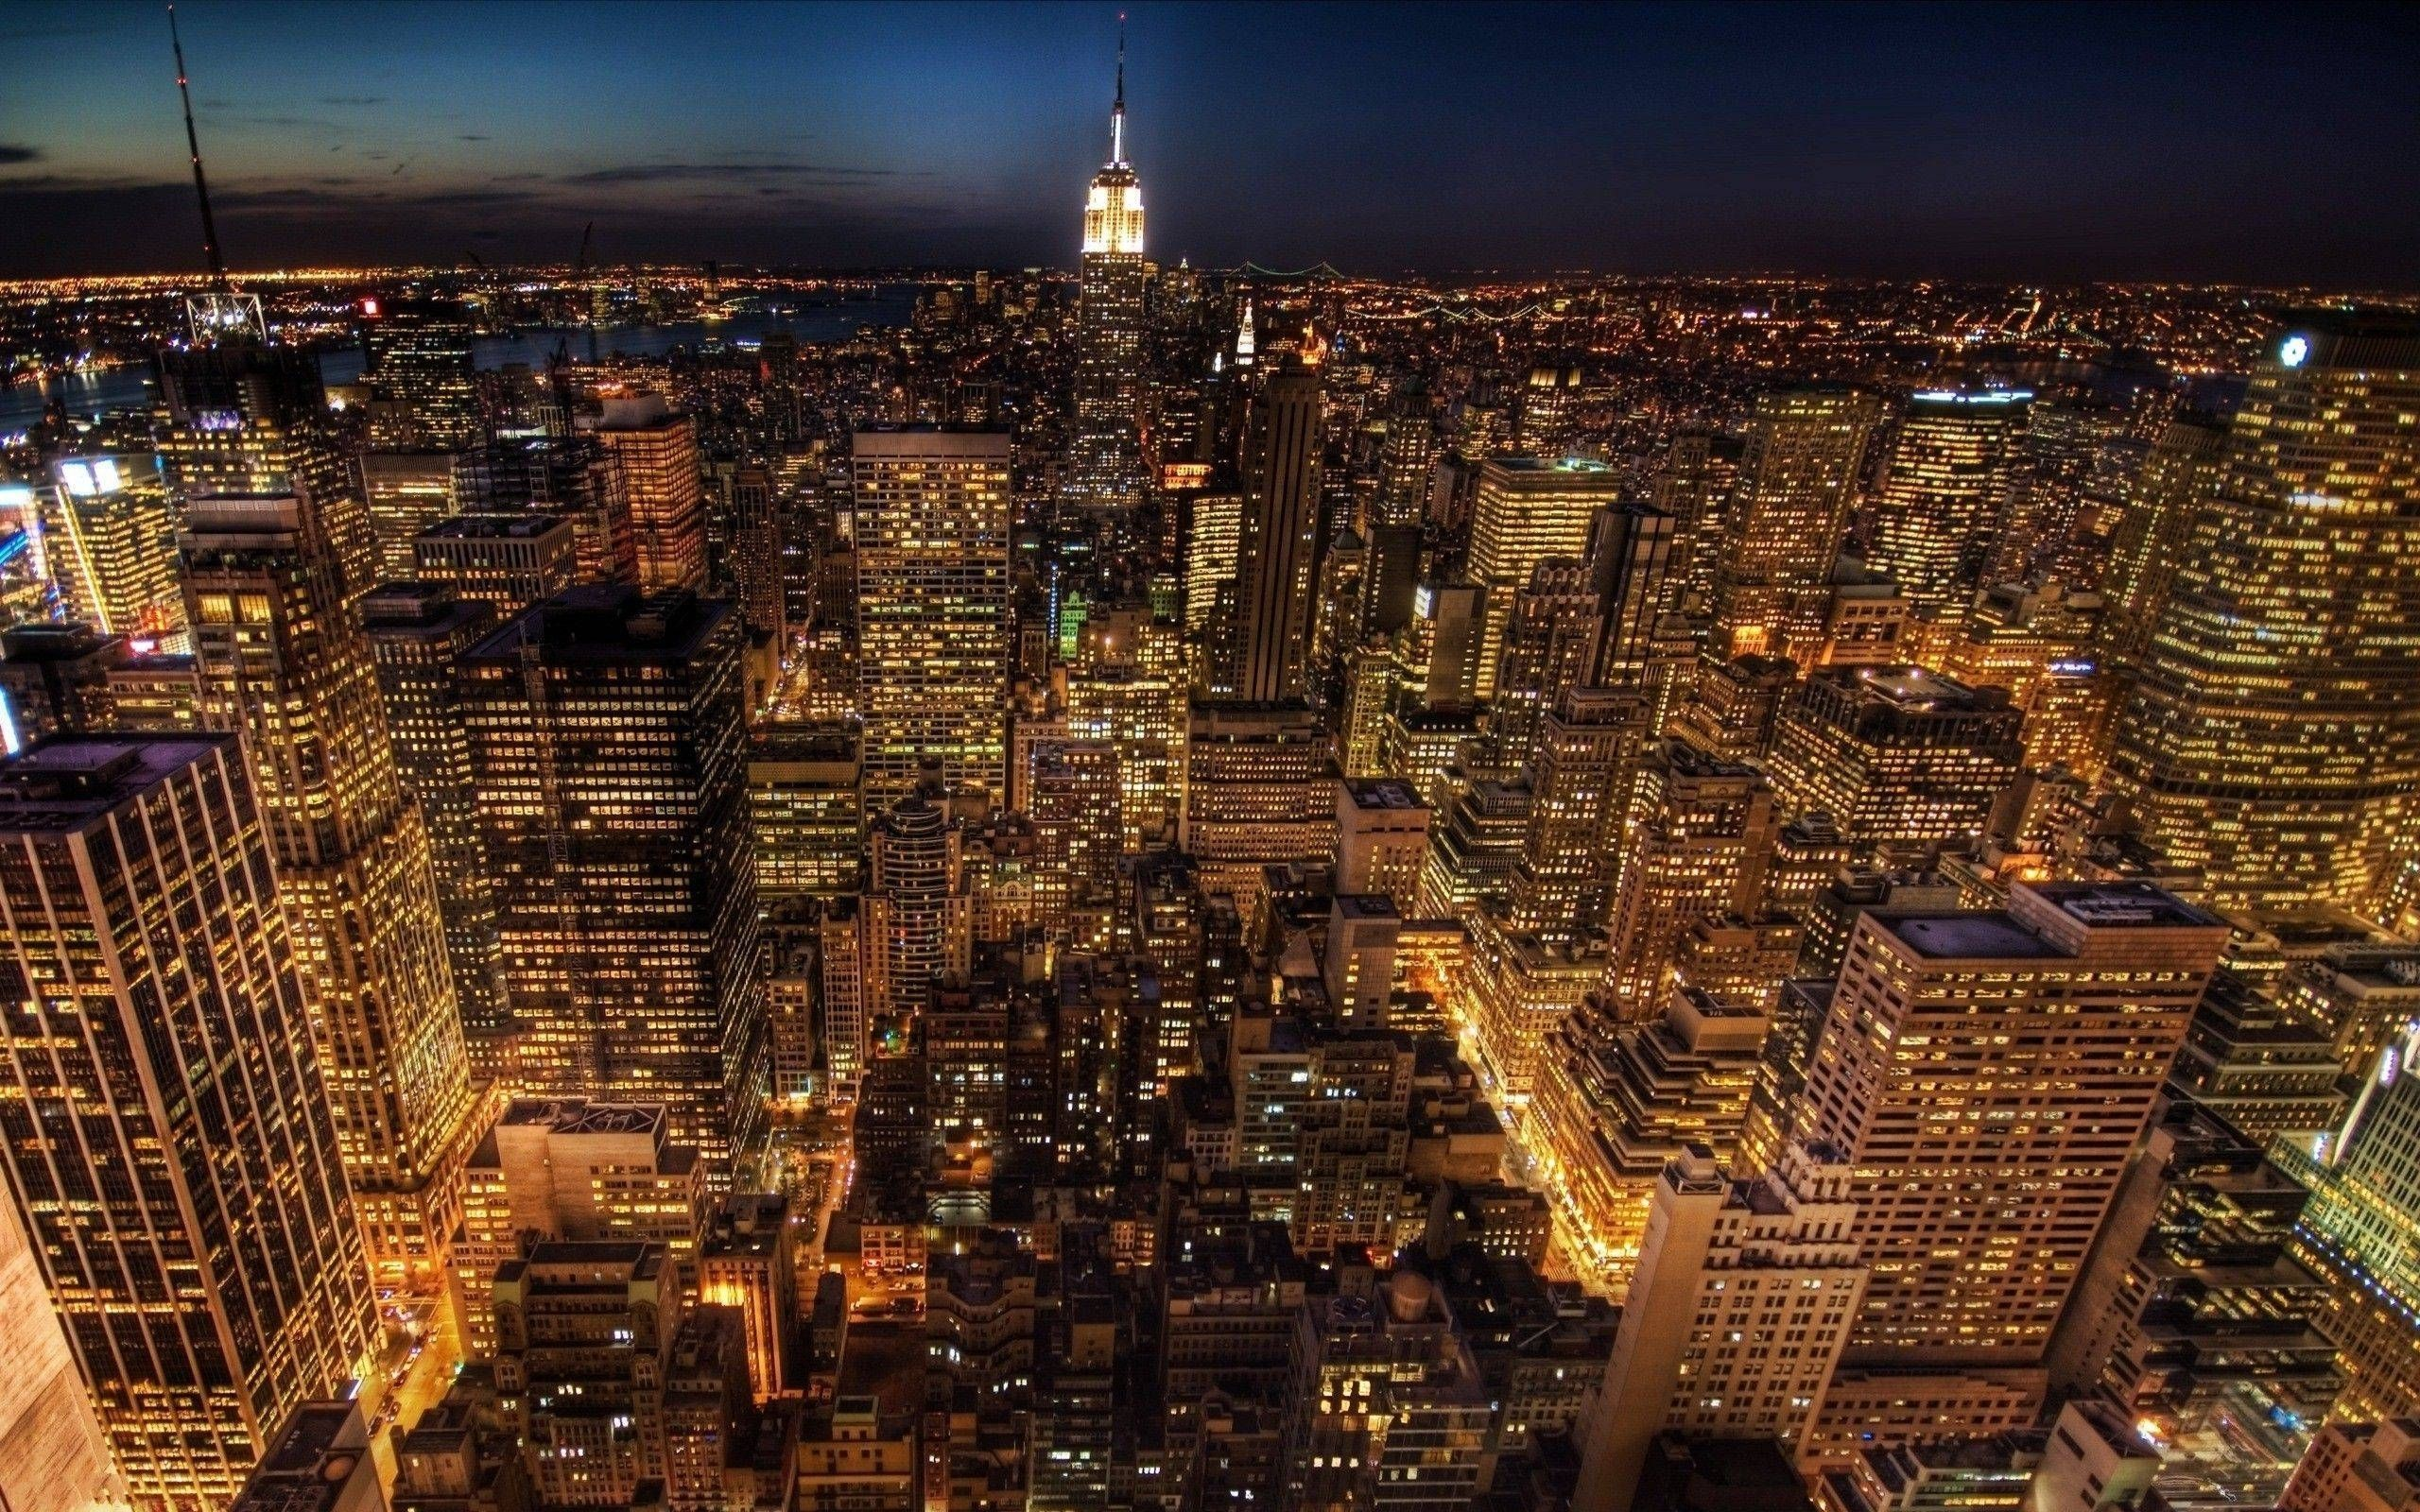 10 best new york city night hd wallpaper full hd 1080p for for Sfondi desktop new york